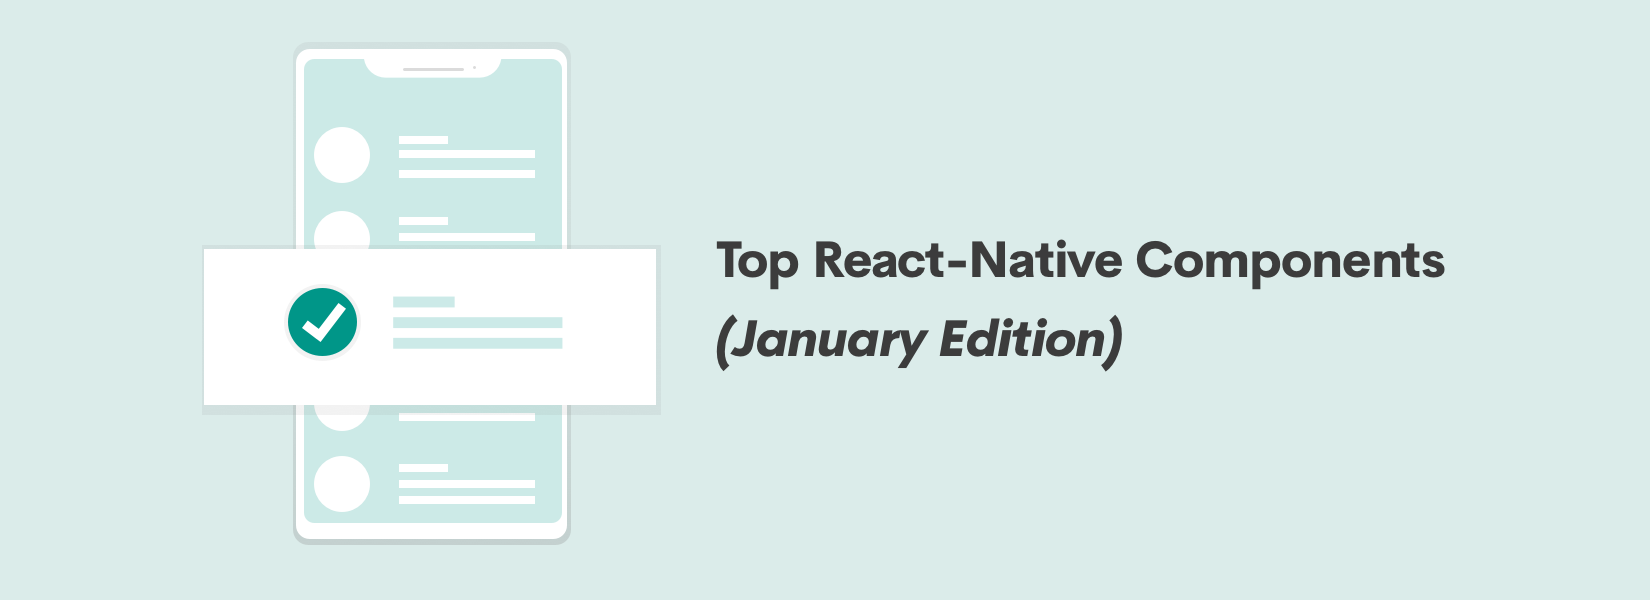 Top React-Native Components (January Edition)